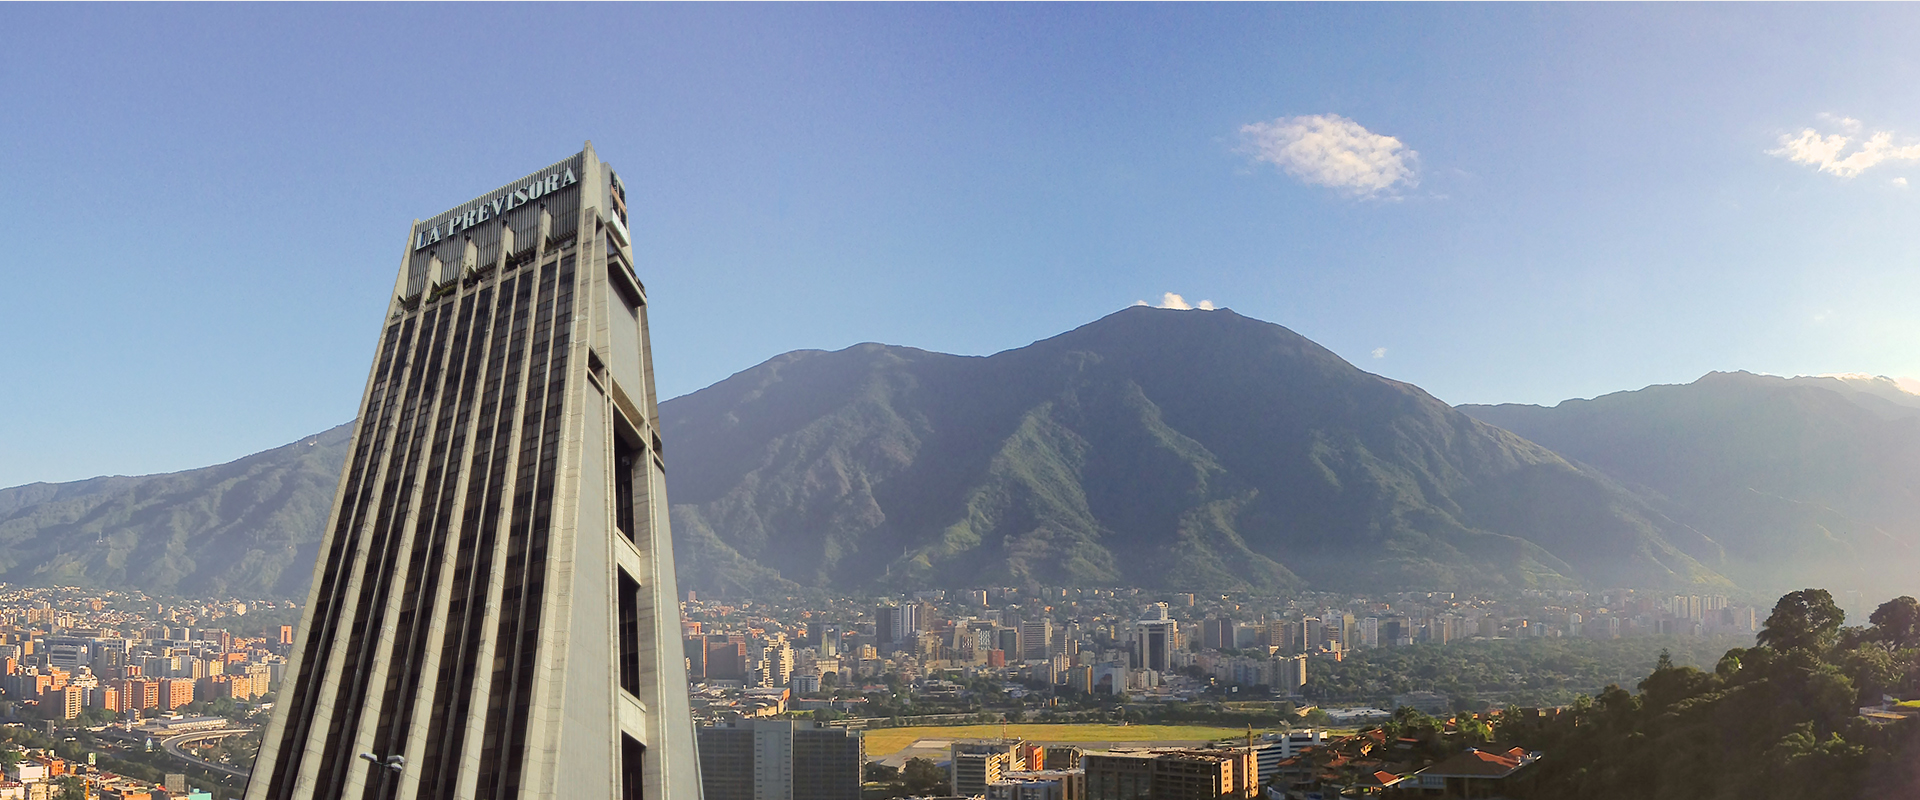 MM_About_Caracas2